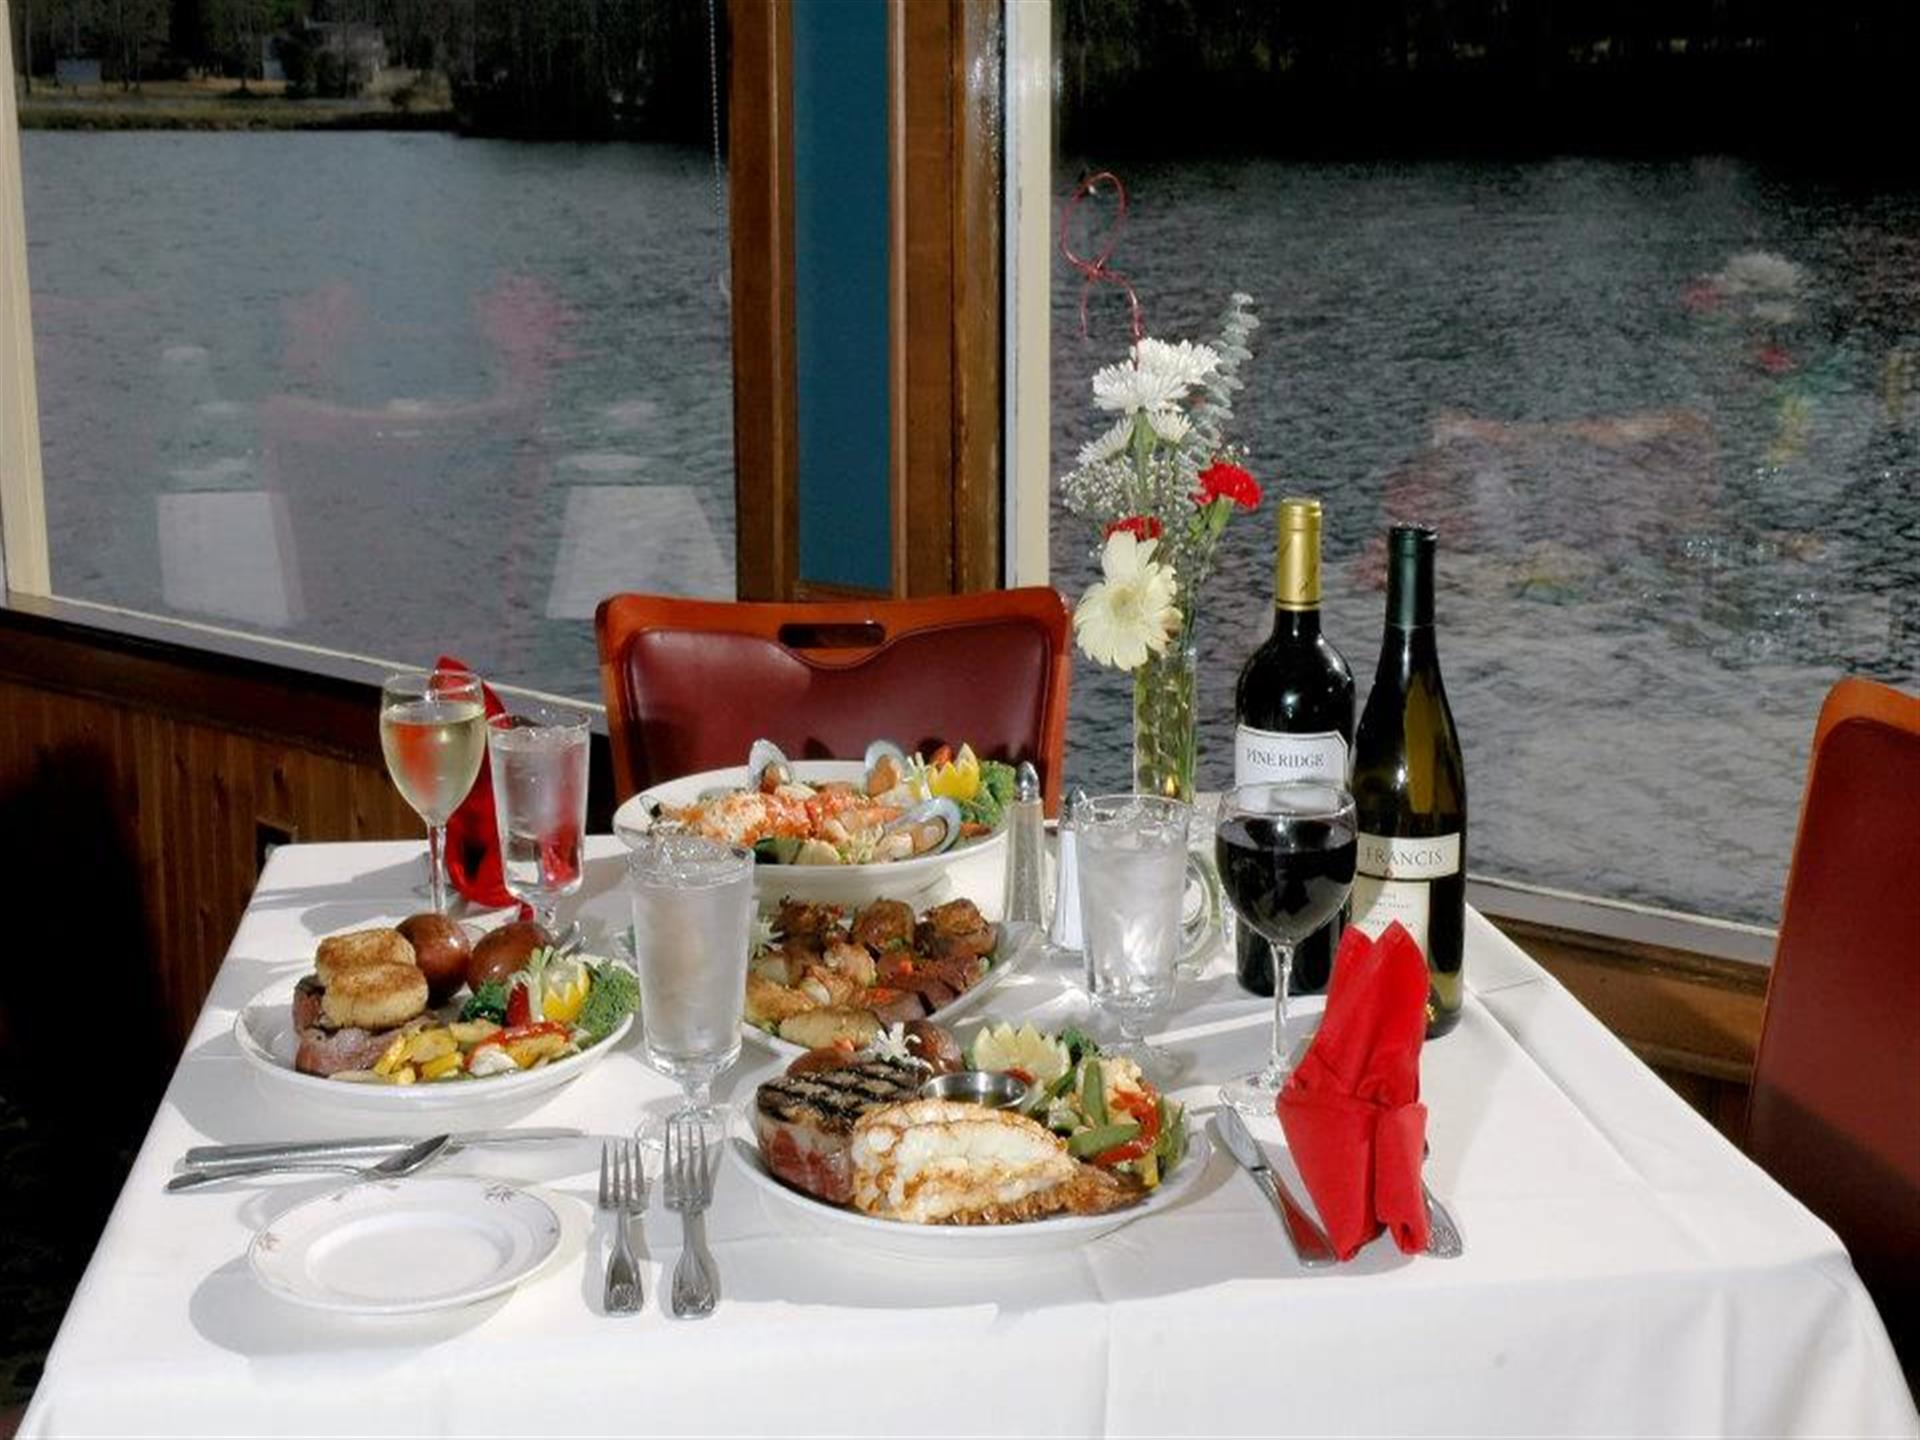 table with various plates of food such as fish, burgers, mussels and two bottles of wine